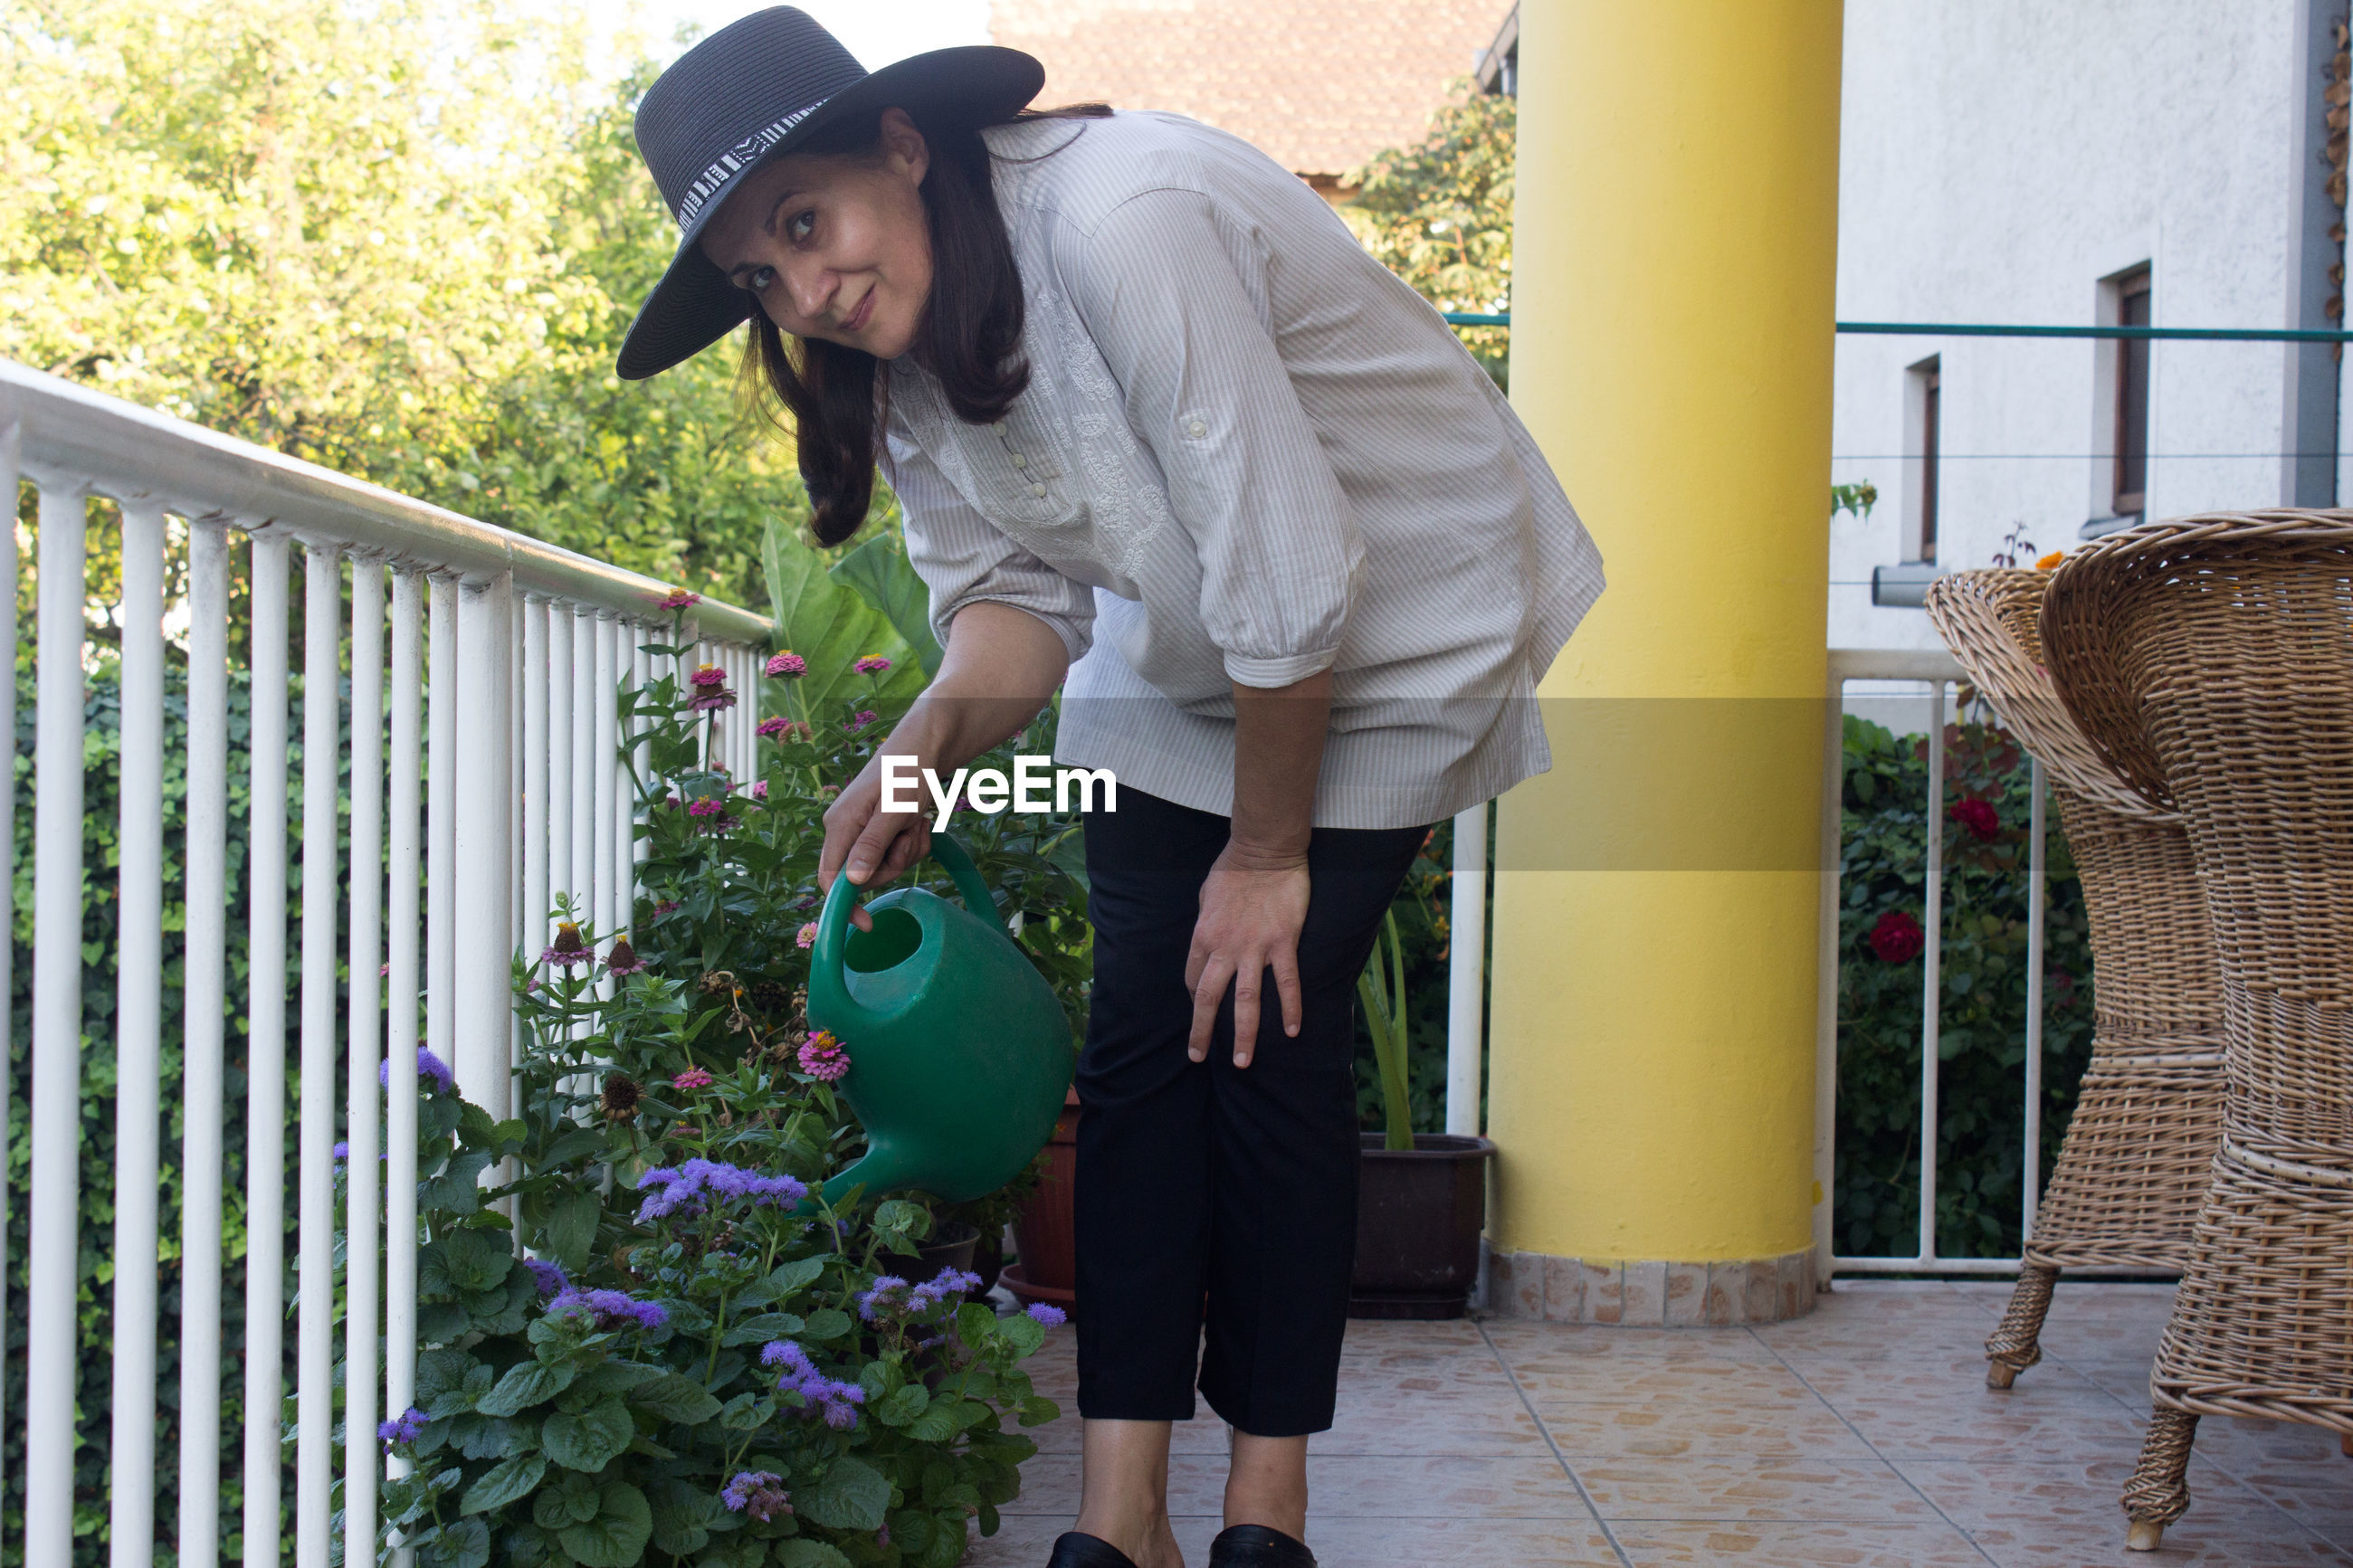 Portrait of woman watering plants while standing by railing